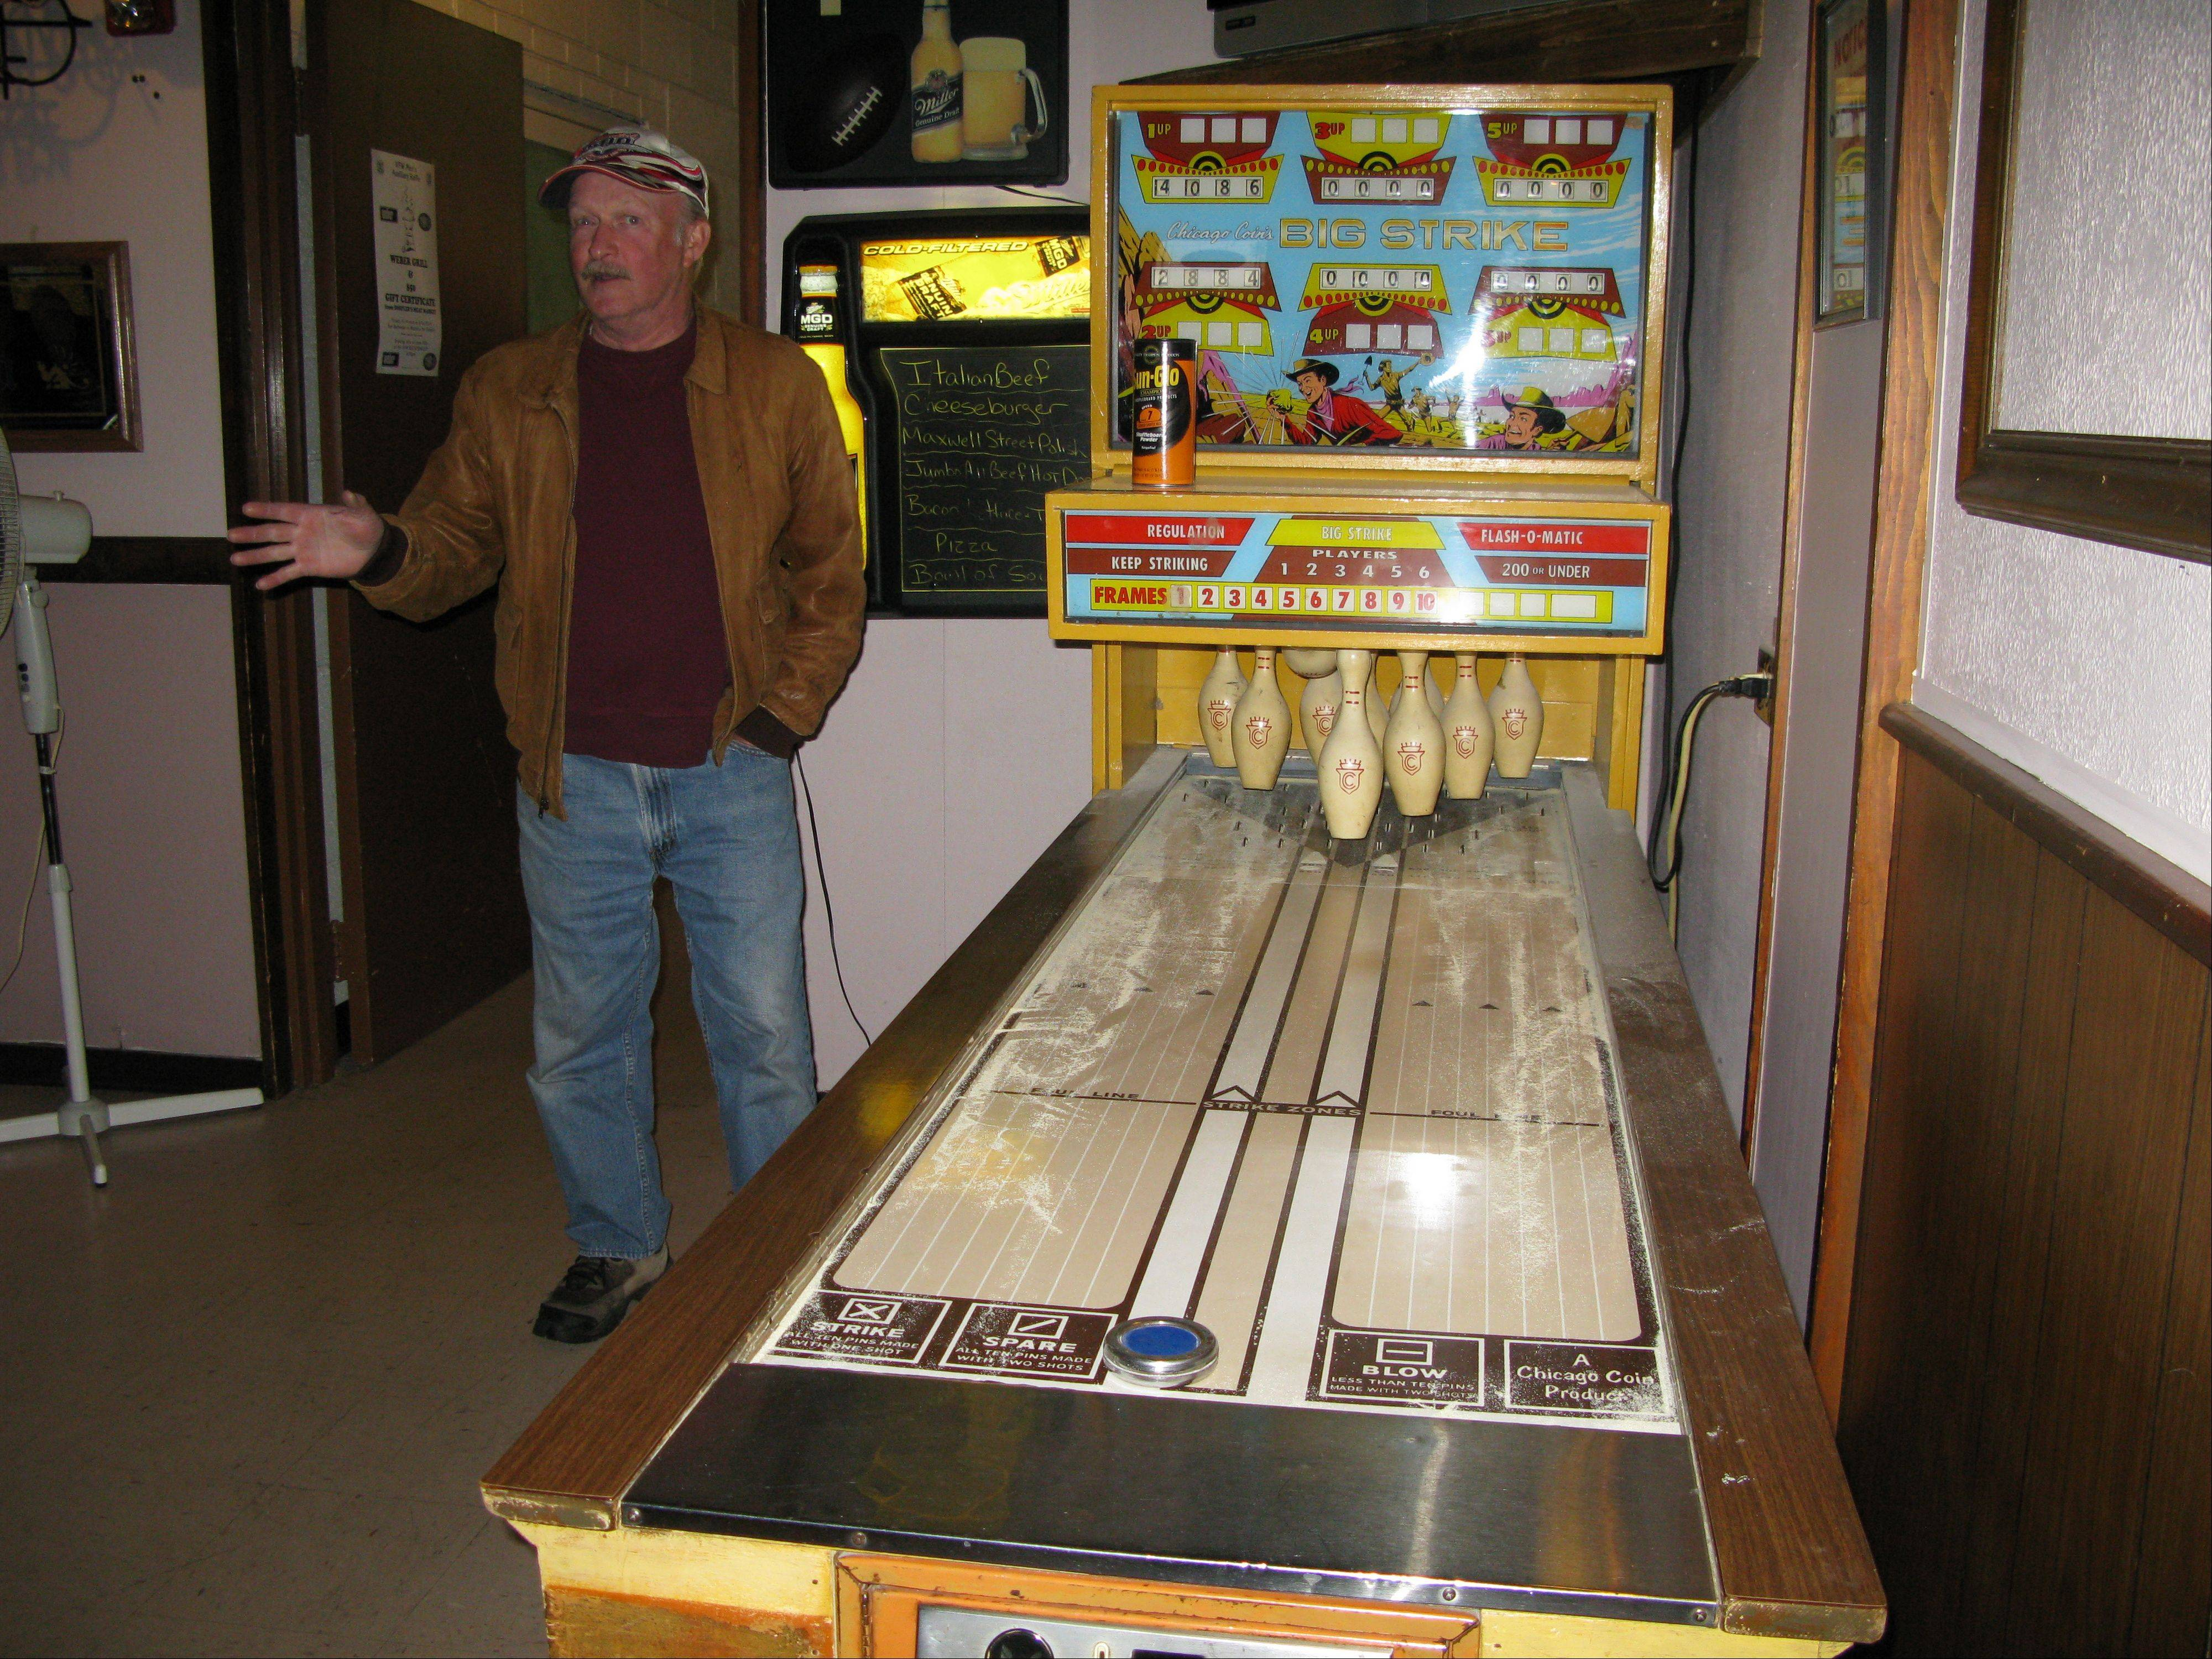 Merle Crumb, president of the Elk Grove Village Veterans Club Inc. hopes to replace this pinball machine with video gambling machines if the village board allows video gambling in town.